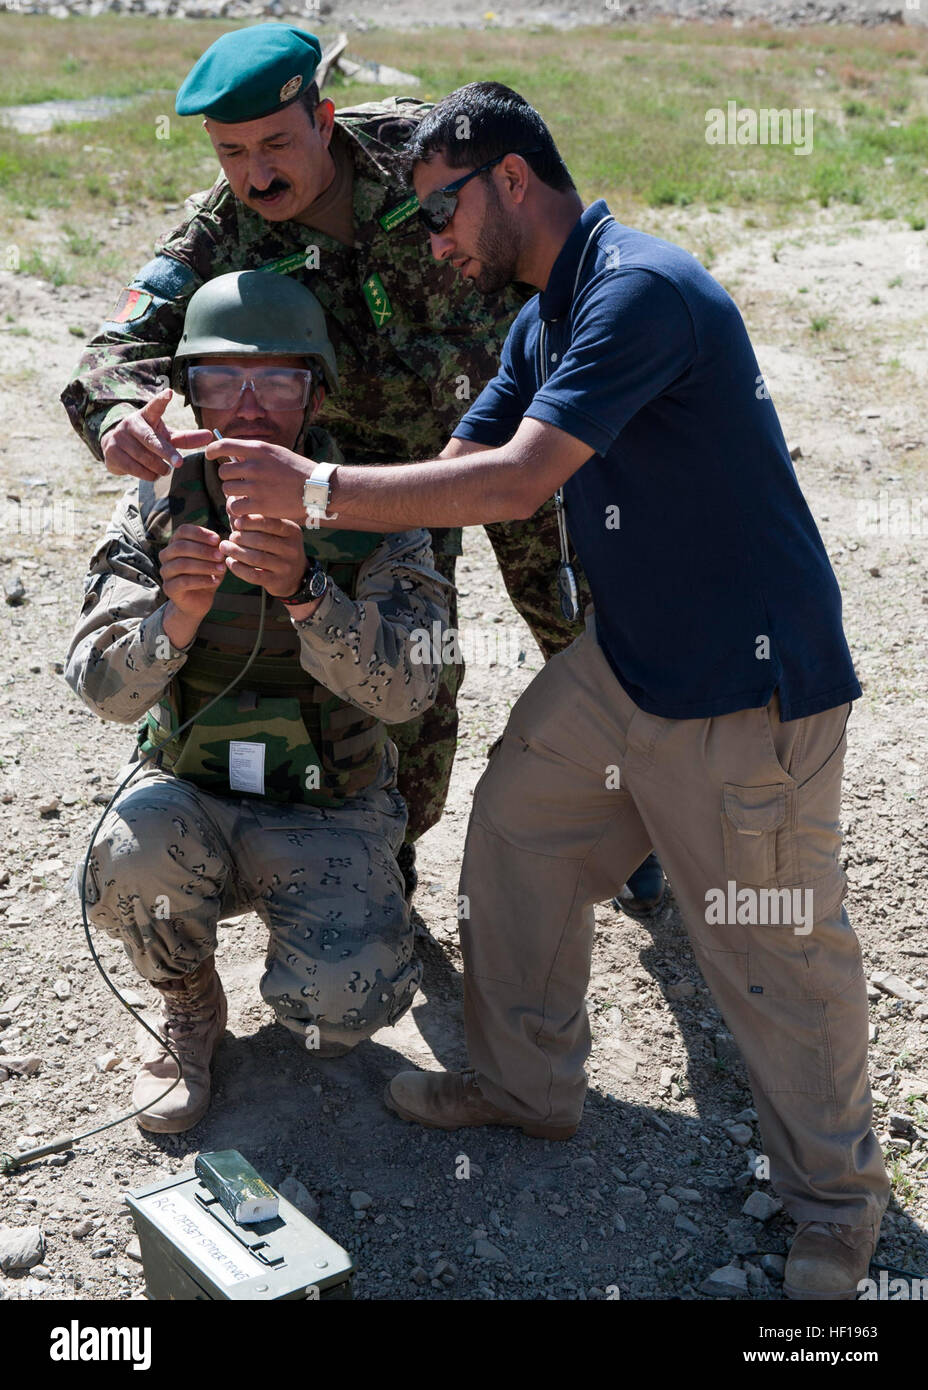 203rd Military Police Battalion Stock Photos & 203rd ...